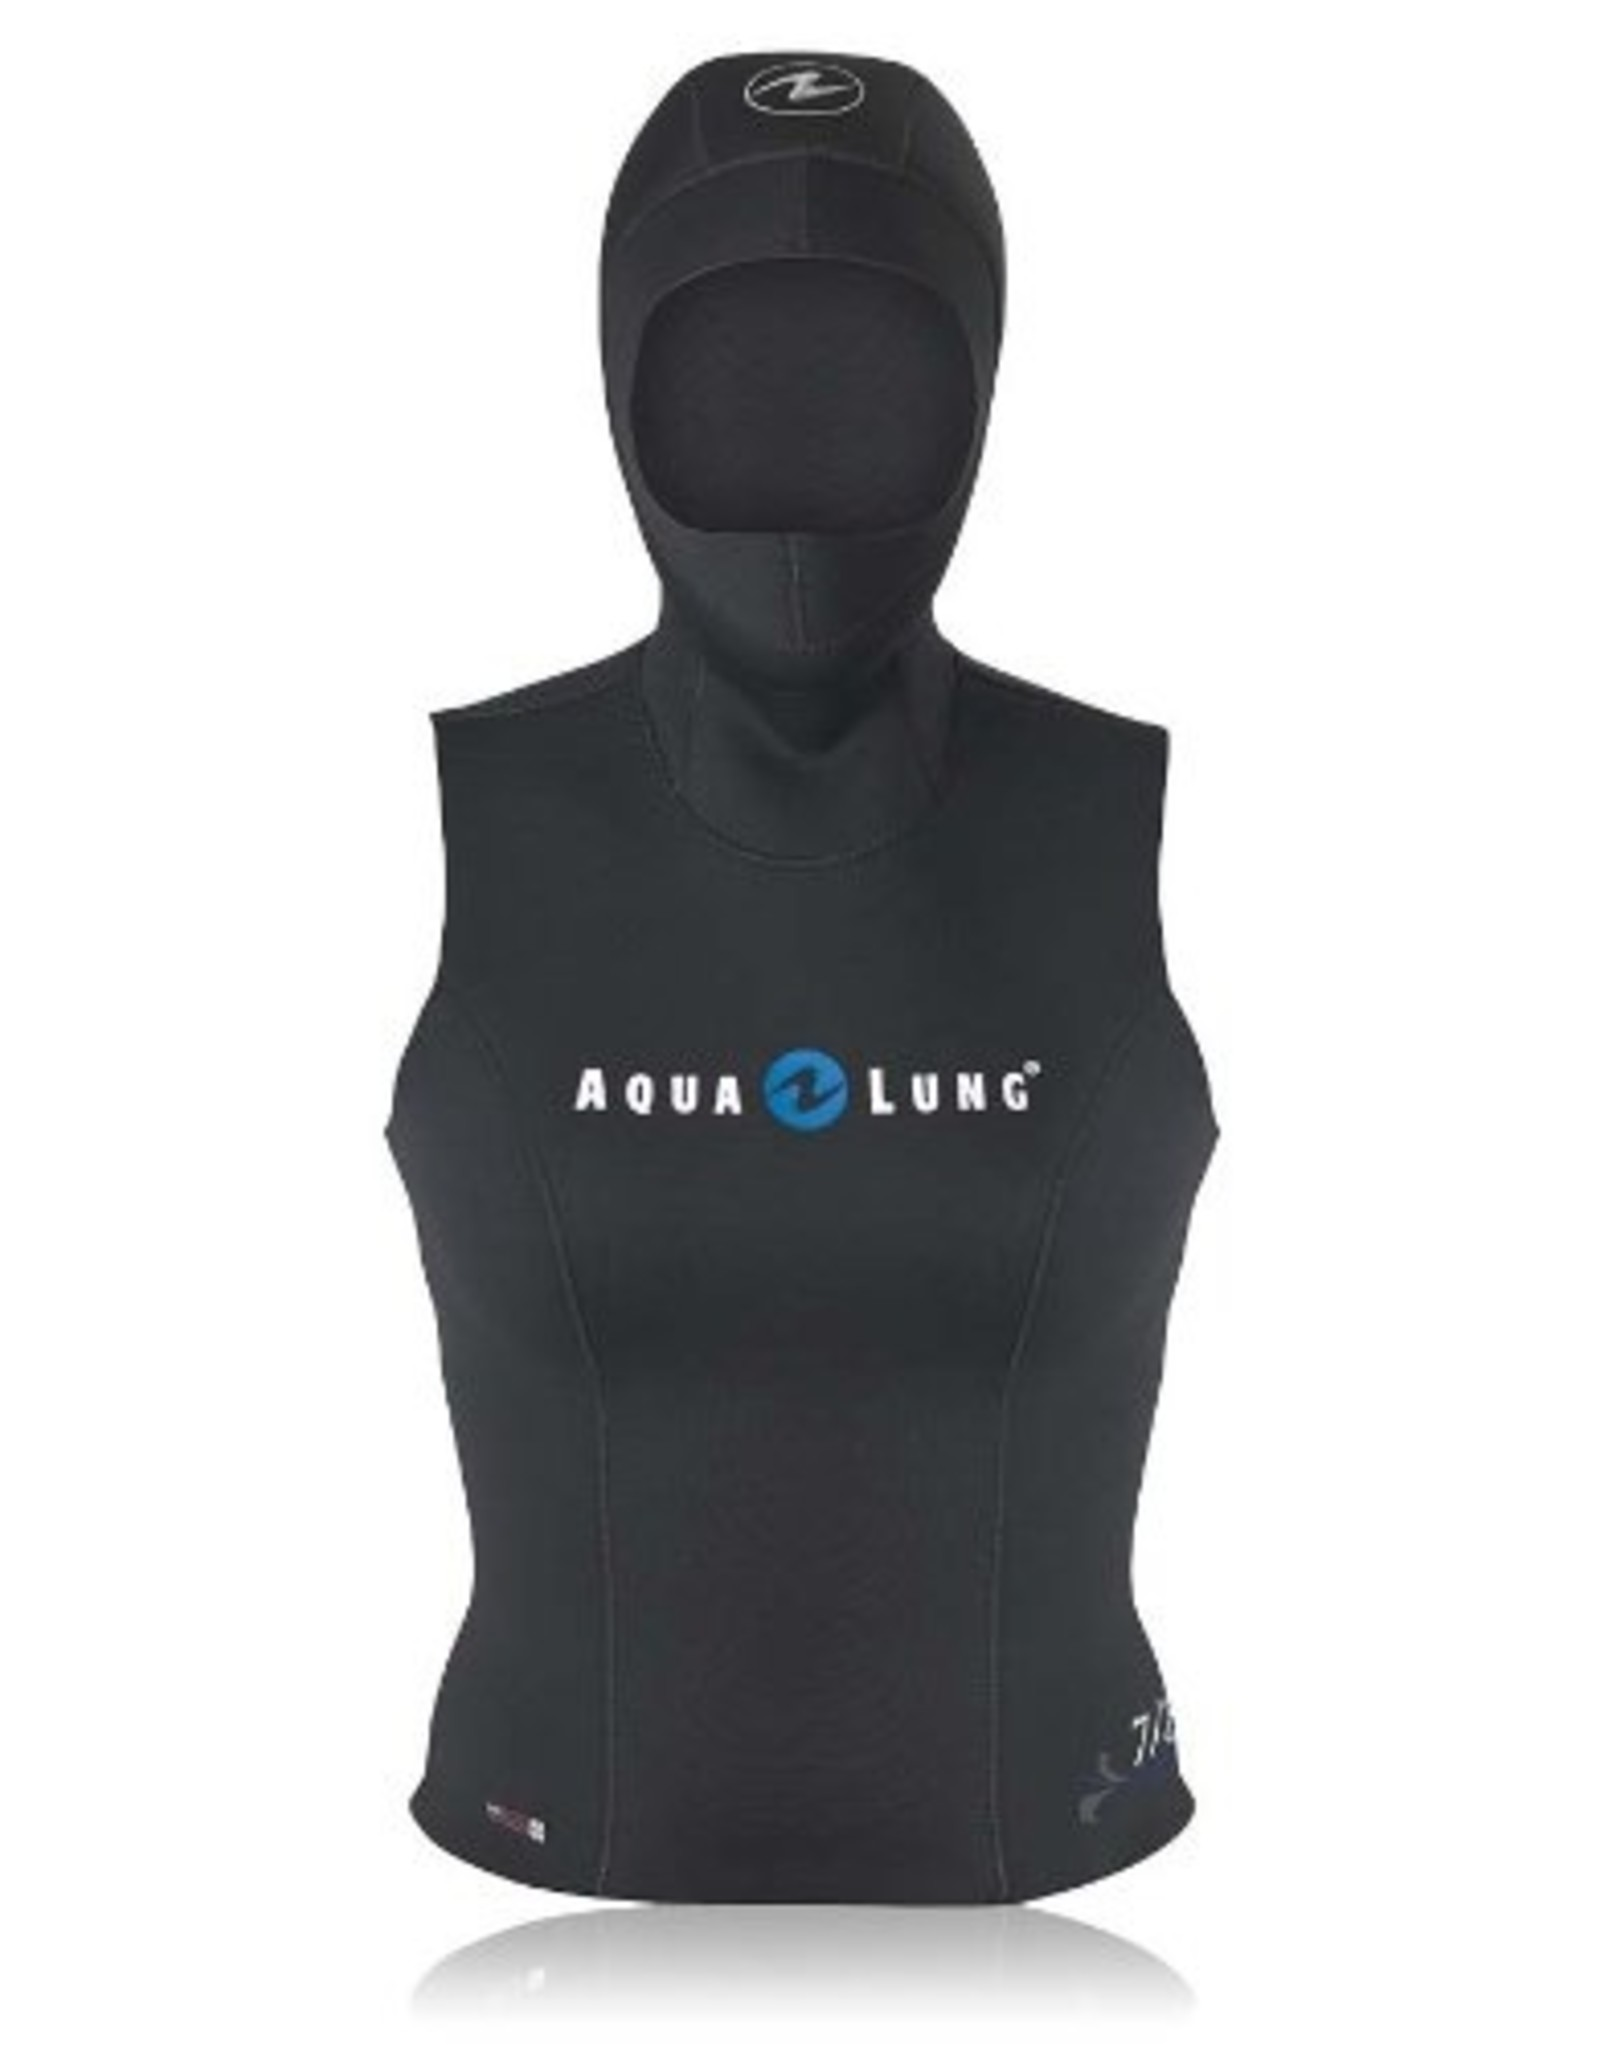 Aqualung Seavest Hooded Vest (1.5mm & 4/6mm)